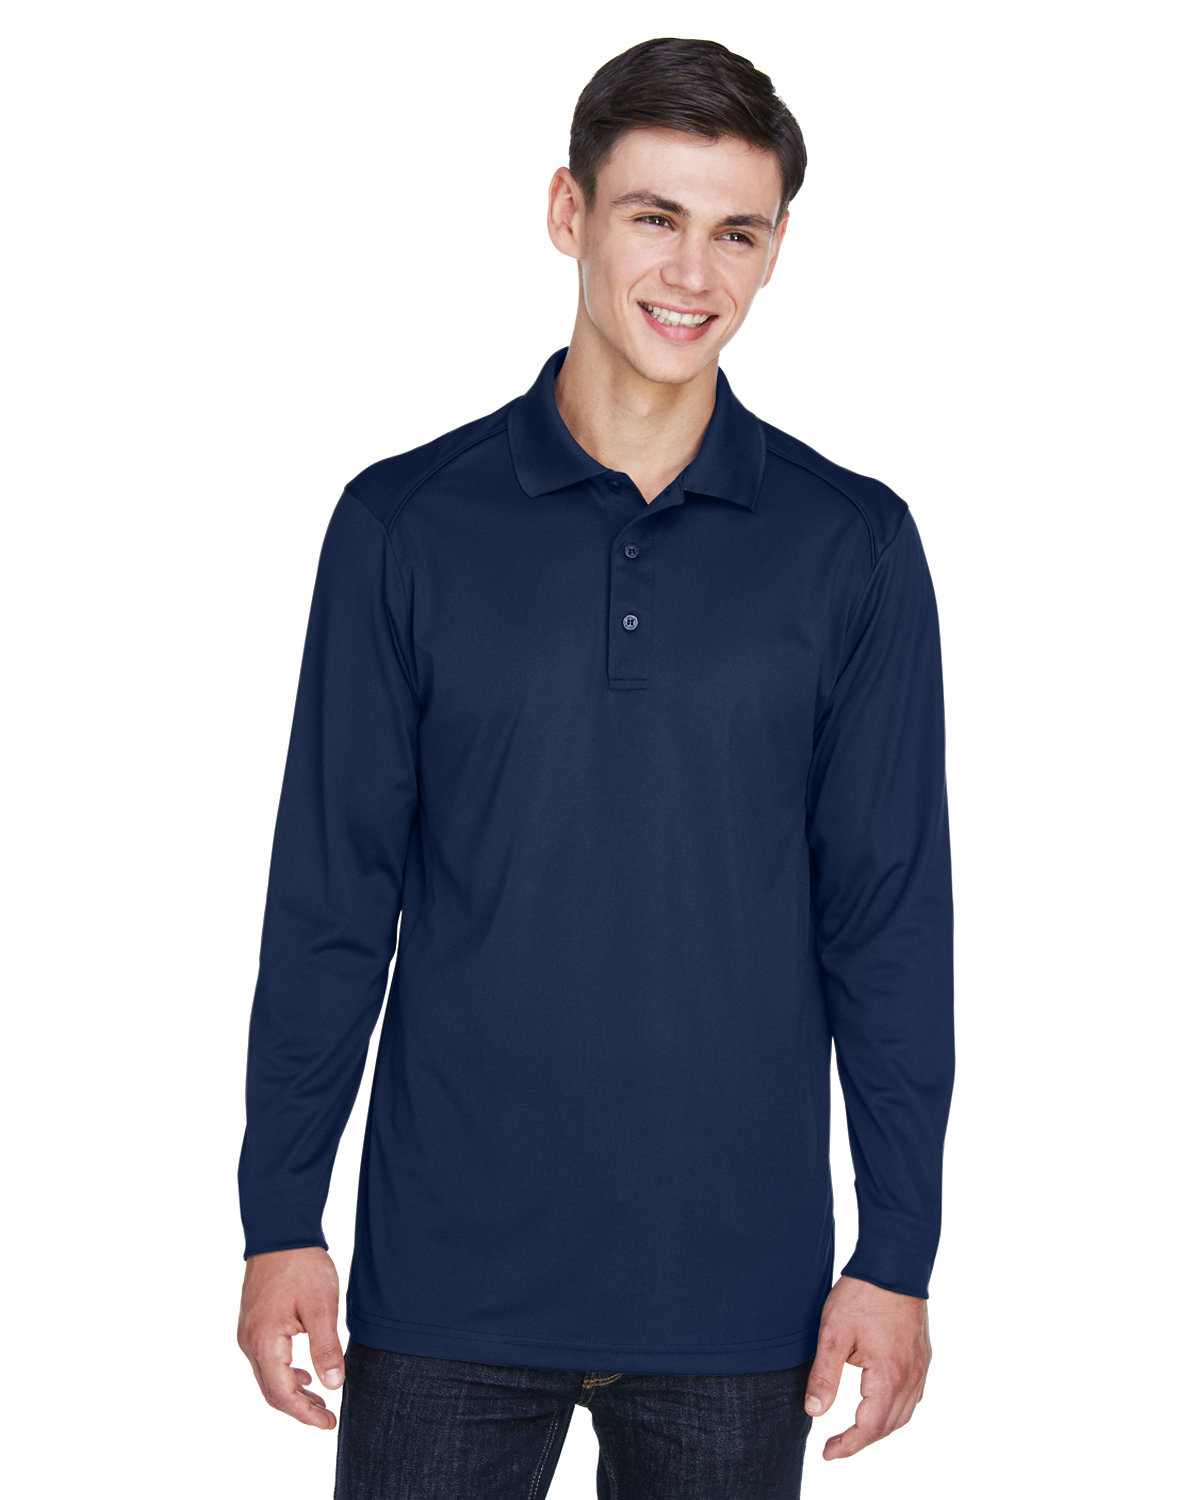 Extreme Men's Tall Eperformance™ Snag Protection Long-Sleeve Polo CLASSIC NAVY